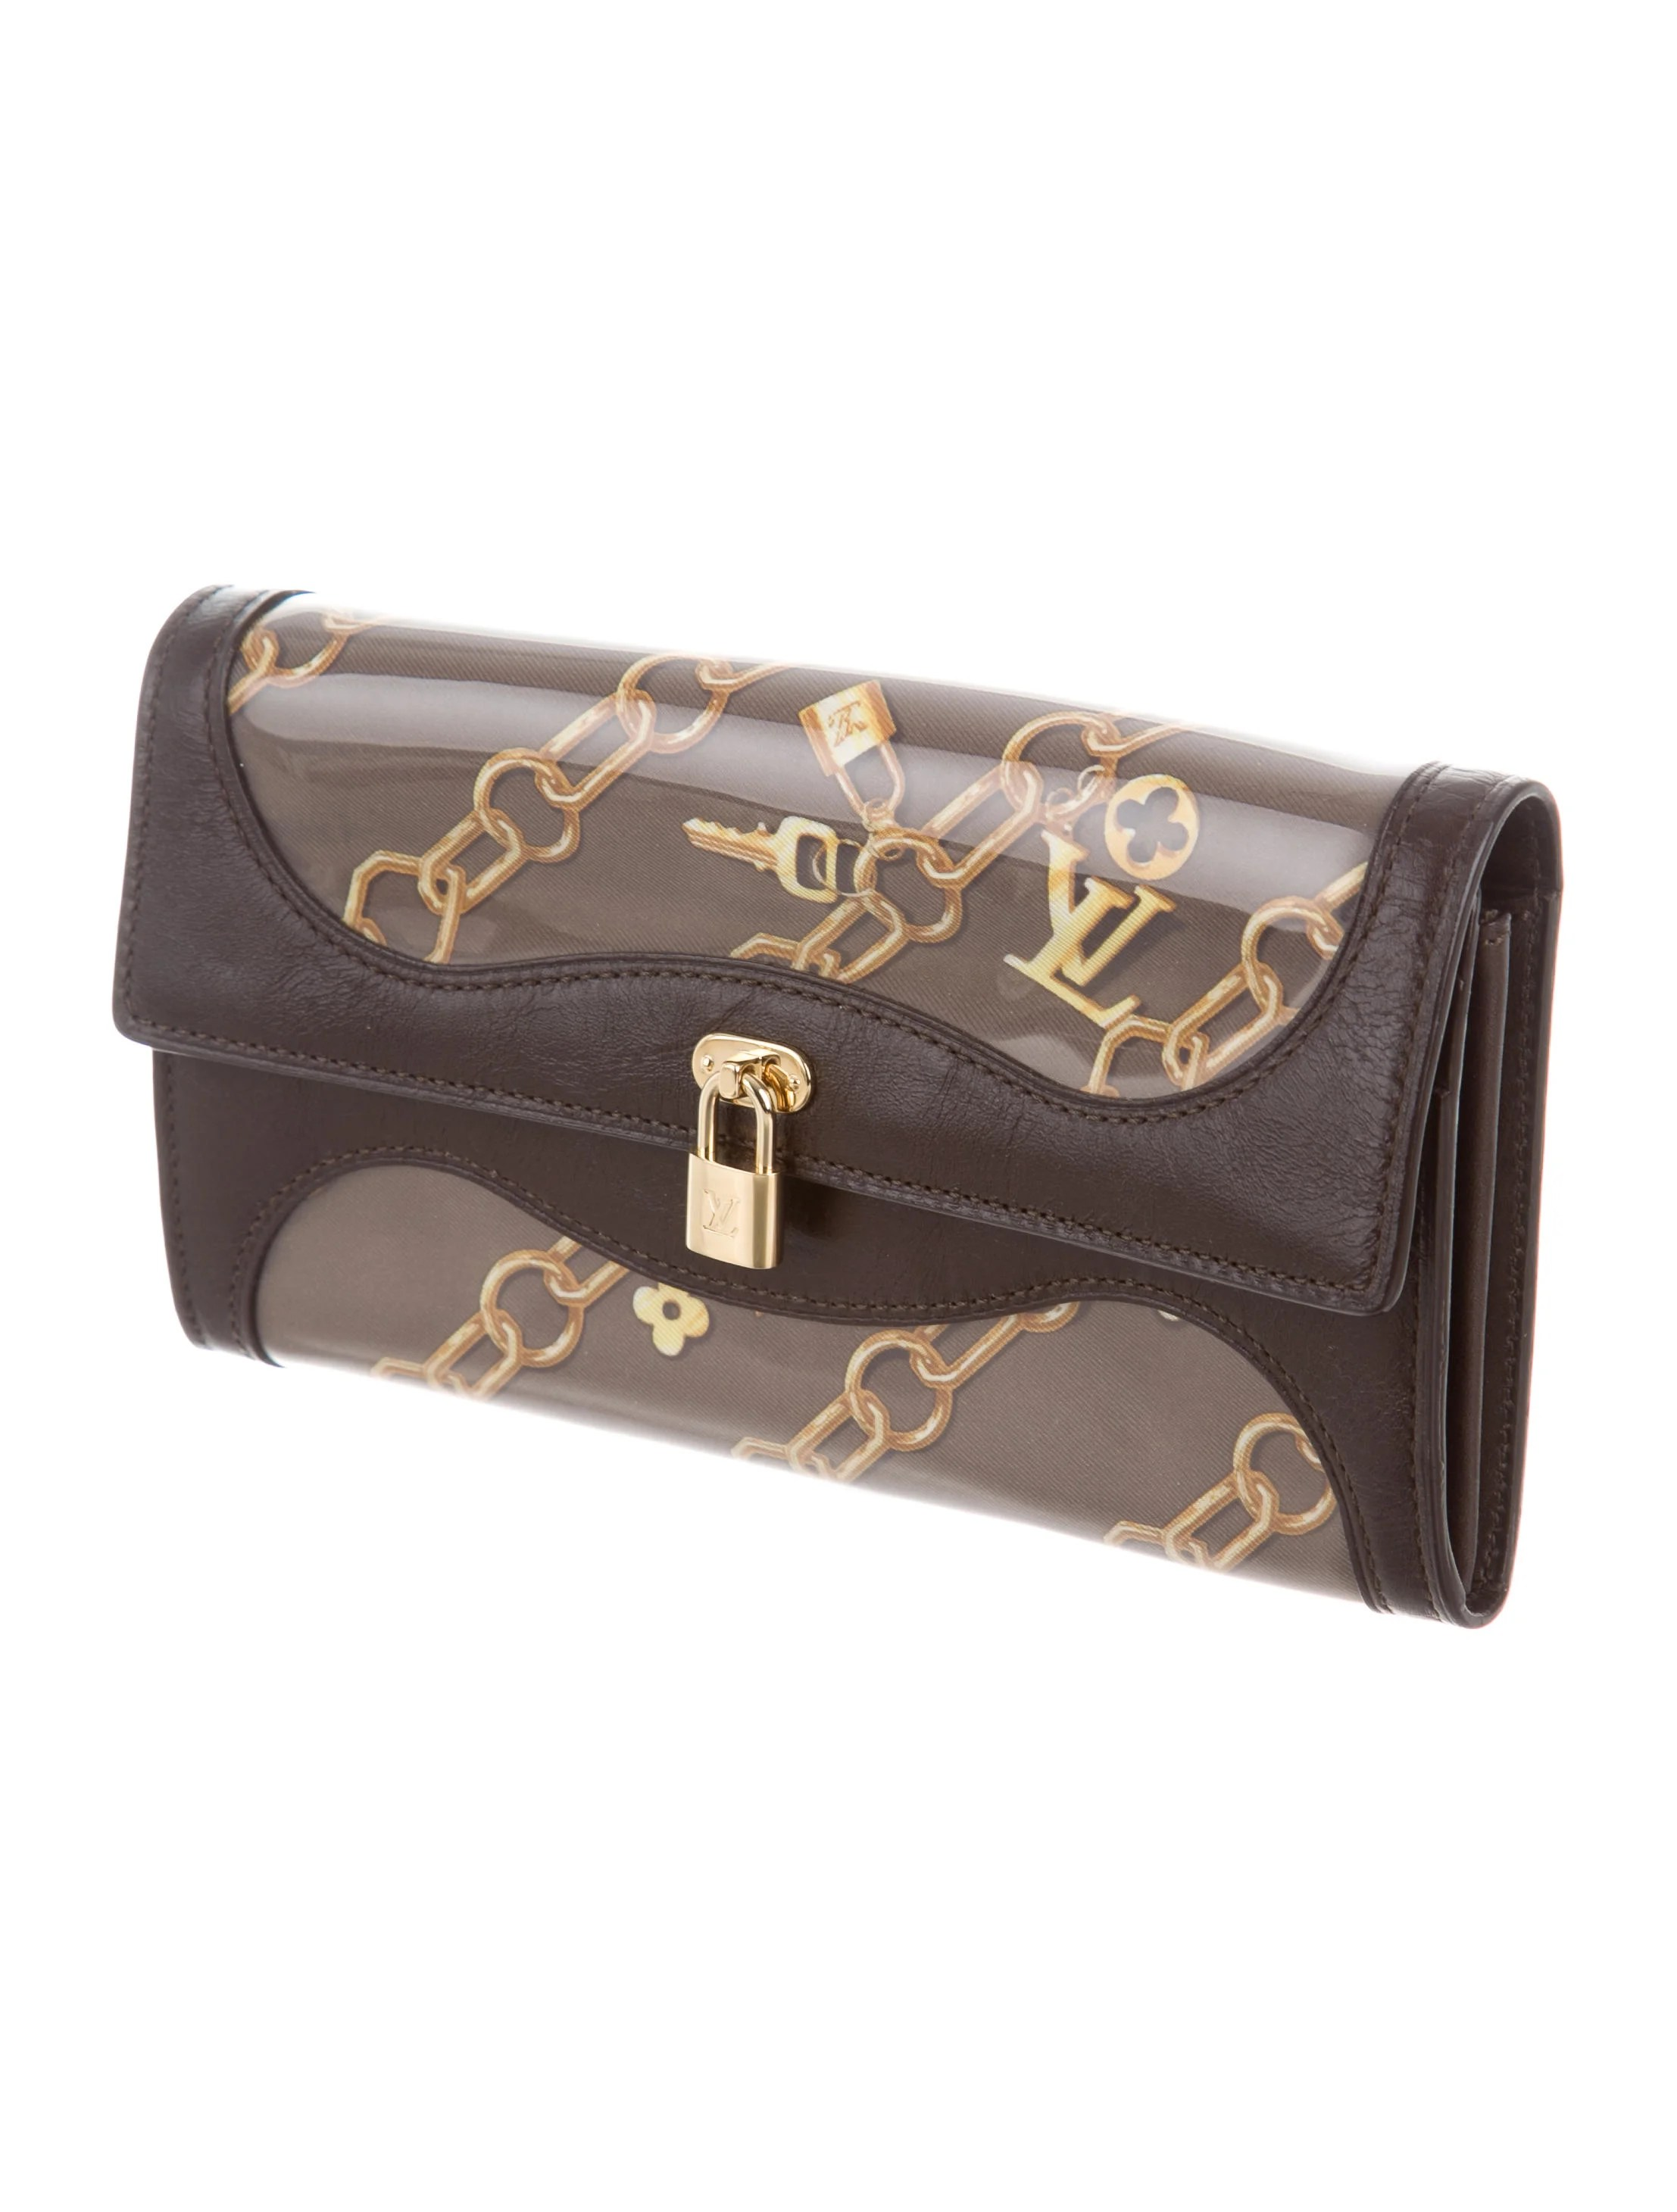 Le Meilleur Louis Vuitton Charms Porte Monnaie Wallet Accessories Ce Mois Ci